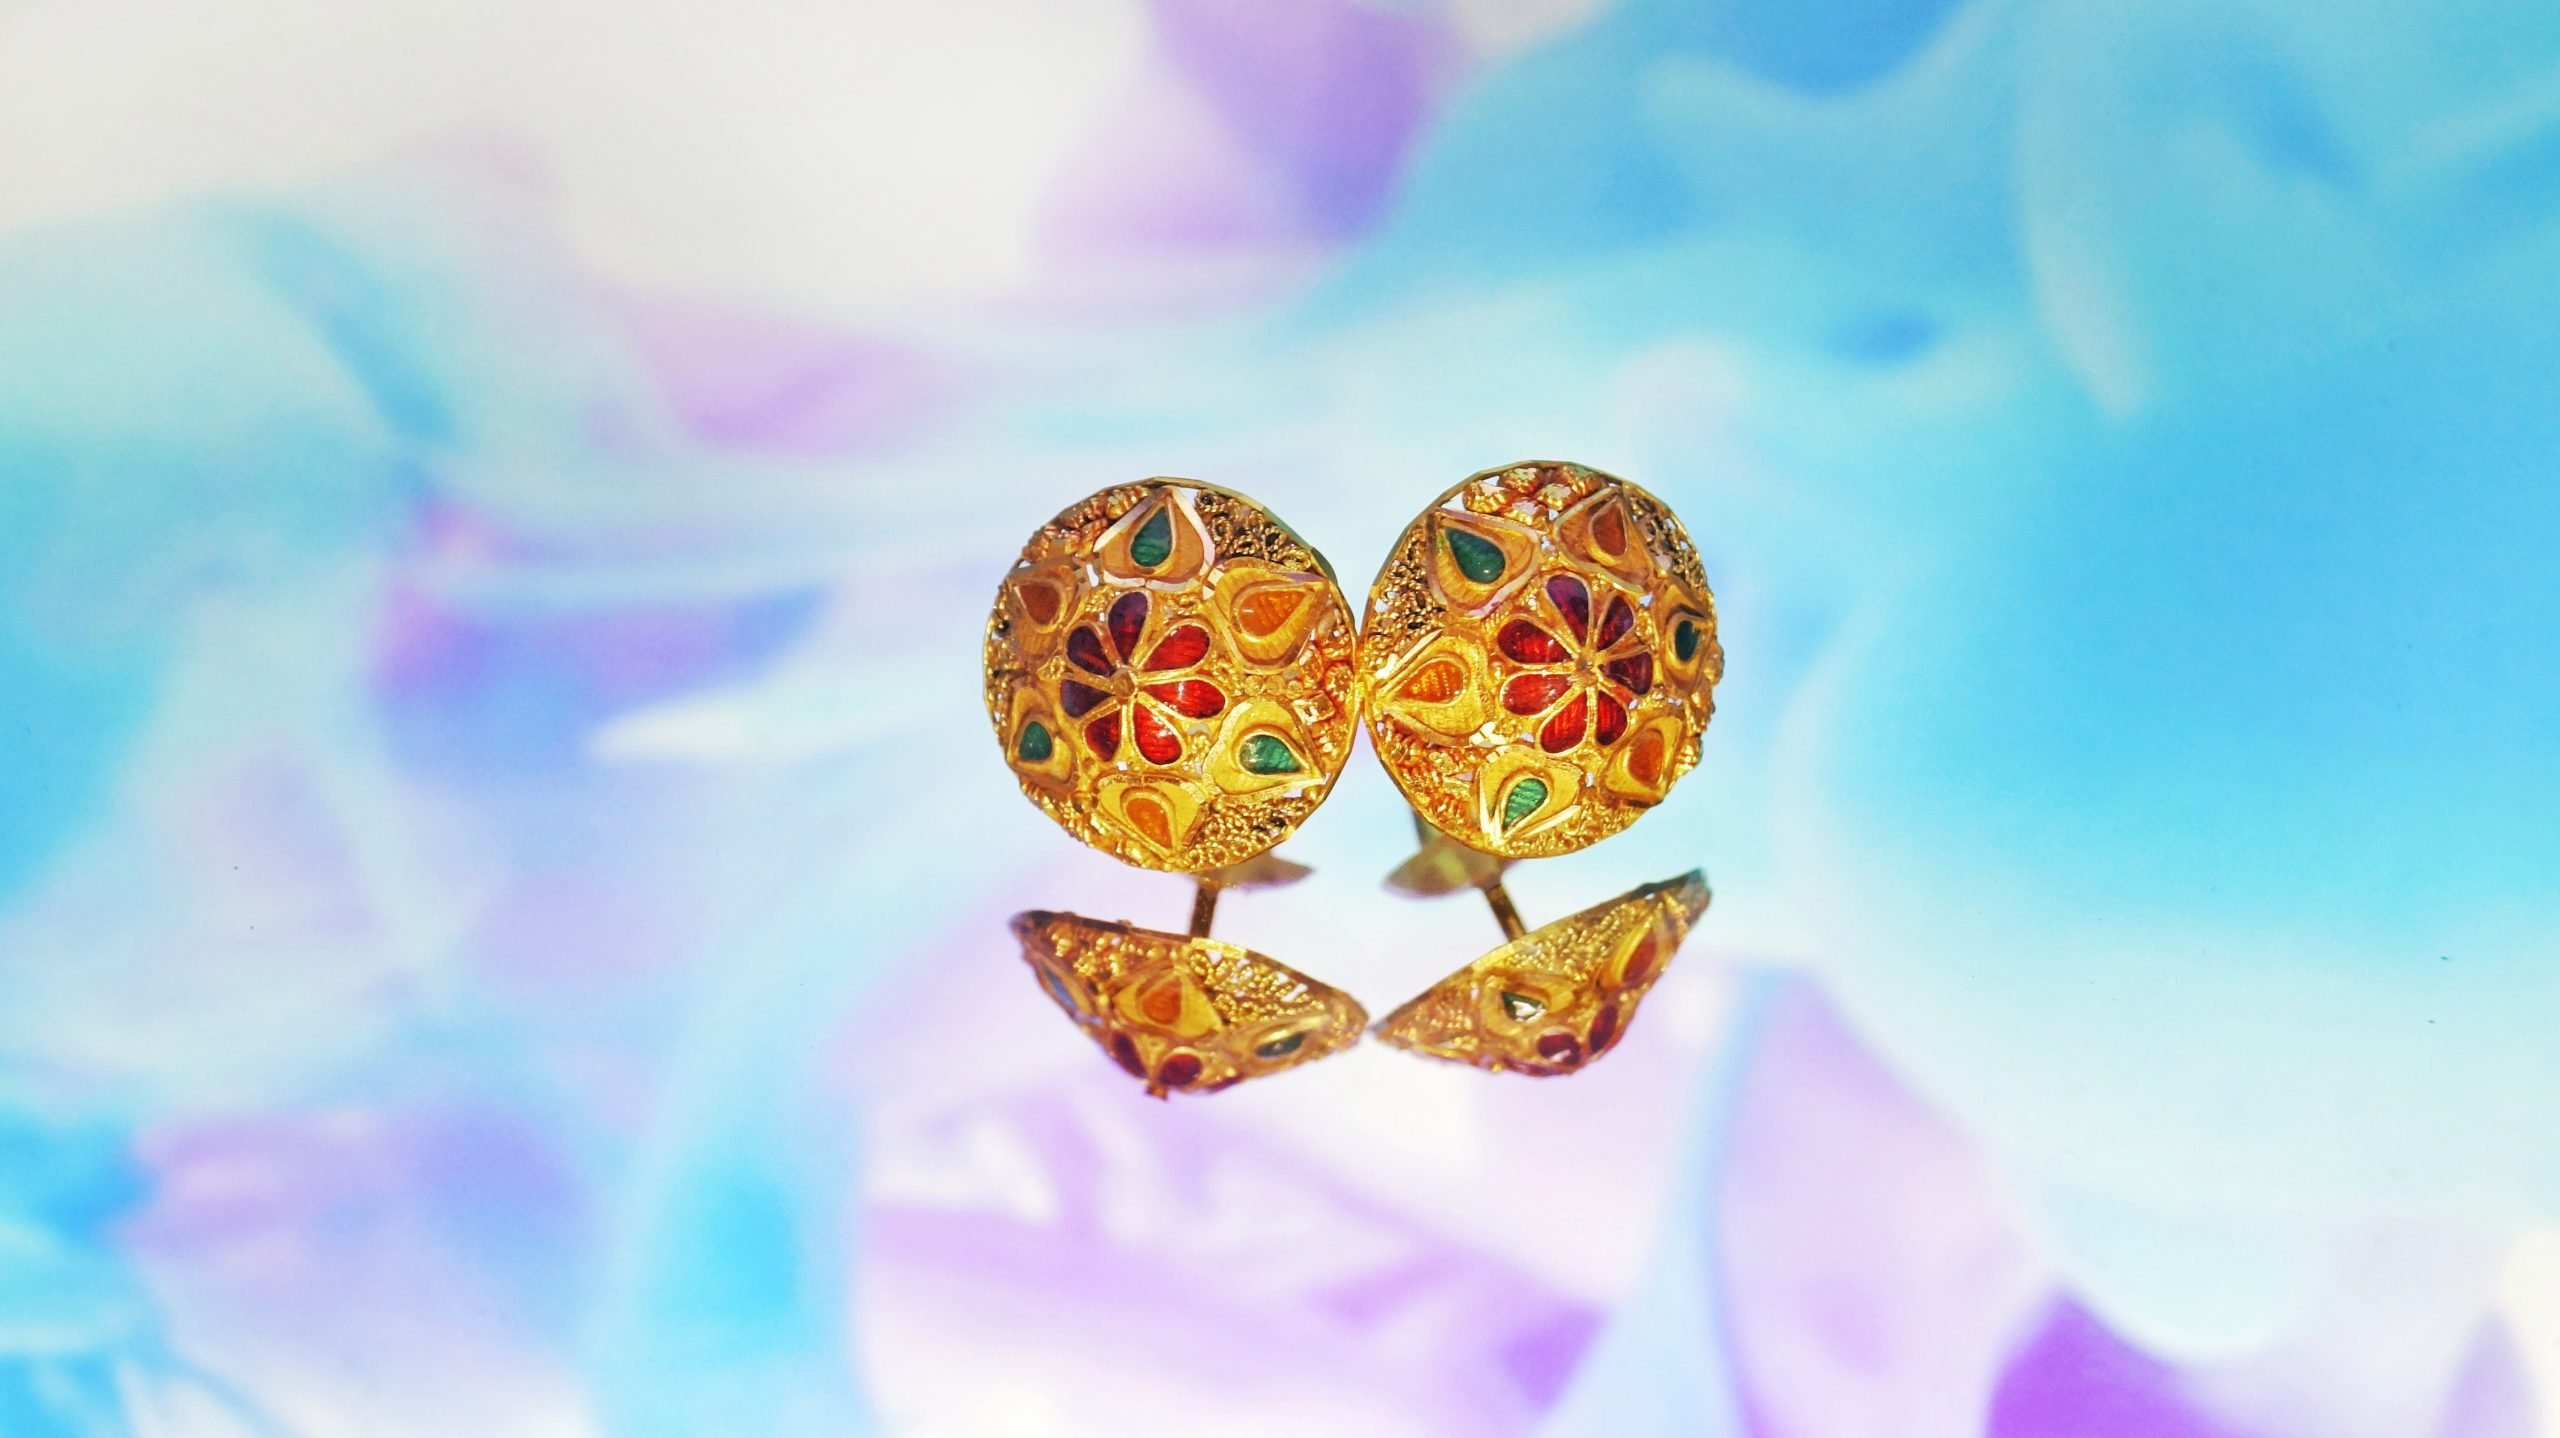 Golden earrings with colorful gemstones